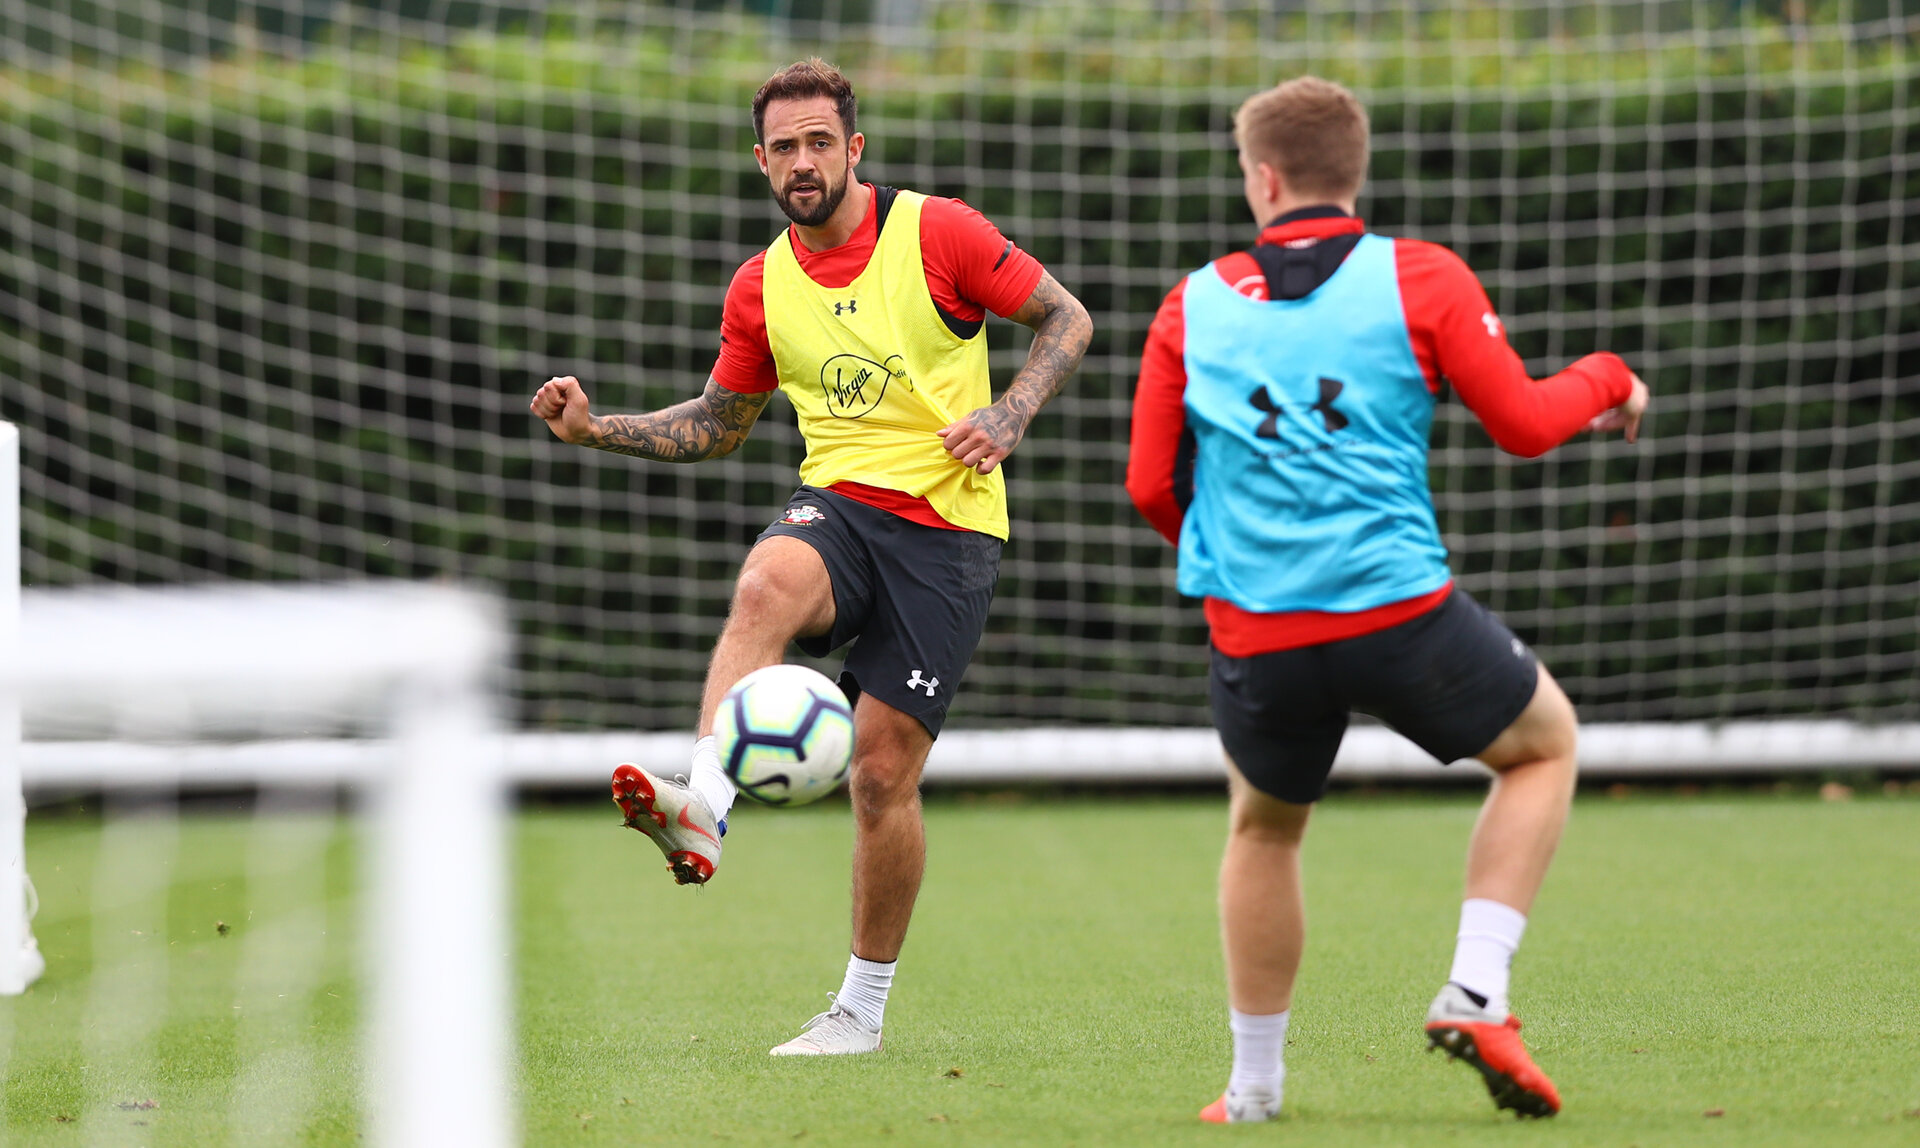 SOUTHAMPTON, ENGLAND - SEPTEMBER 11: Danny Ings during a Southampton FC training session at the Staplewood Campus on September 11, 2018 in Southampton, England. (Photo by Matt Watson/Southampton FC via Getty Images)